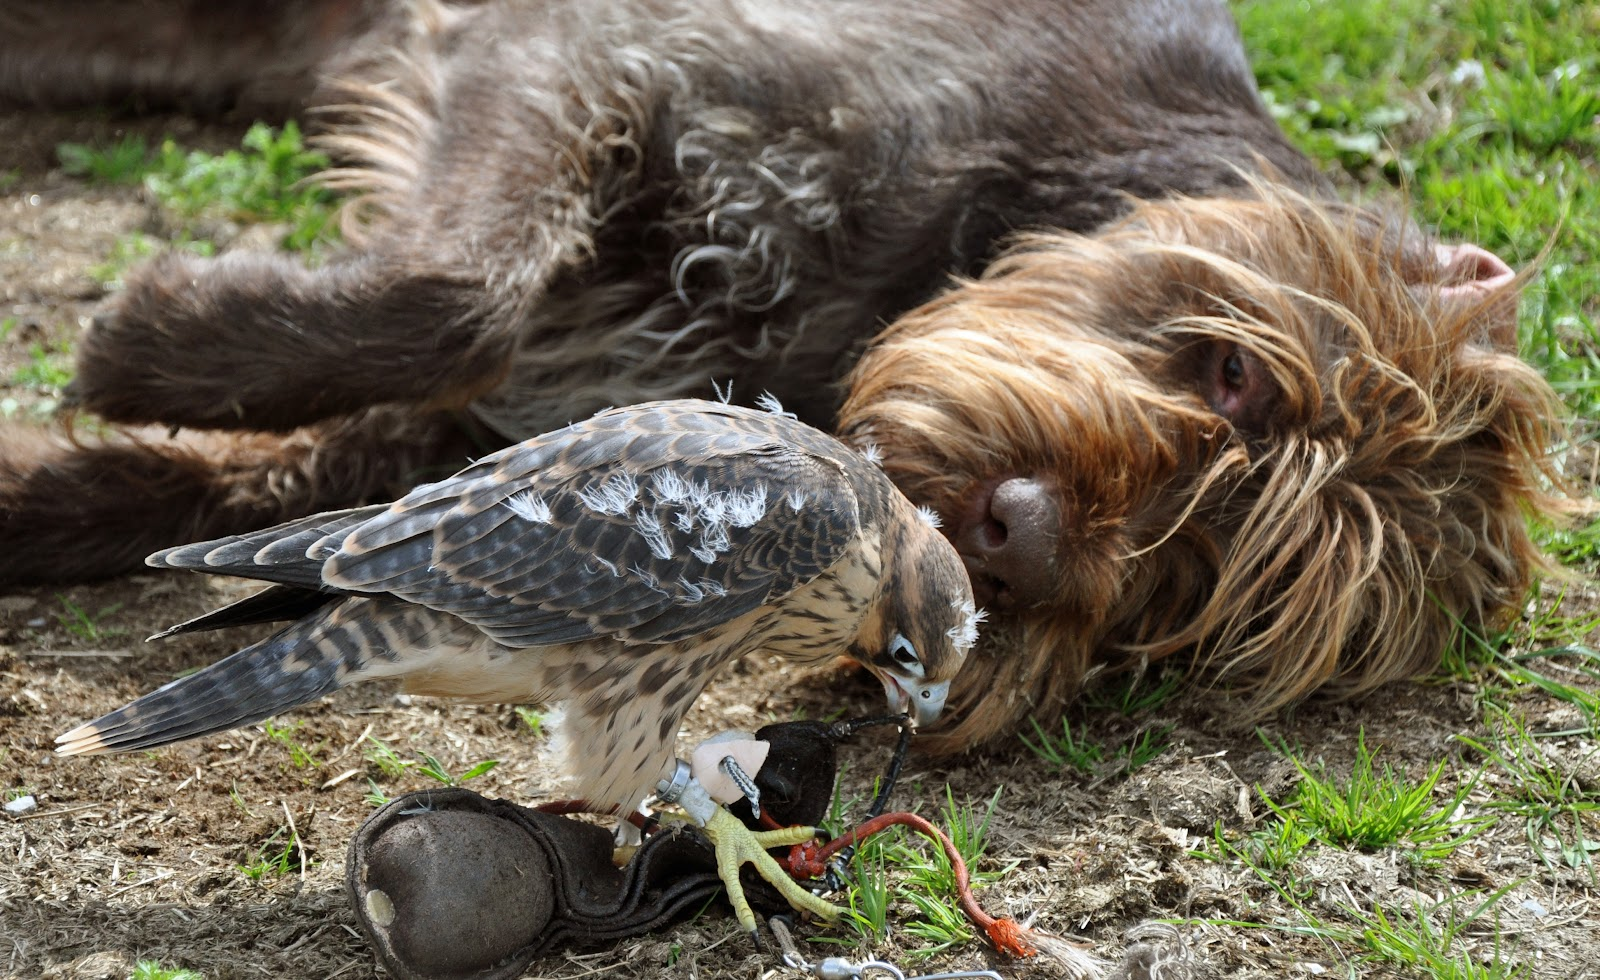 Will Hawks Eat Small Dogs